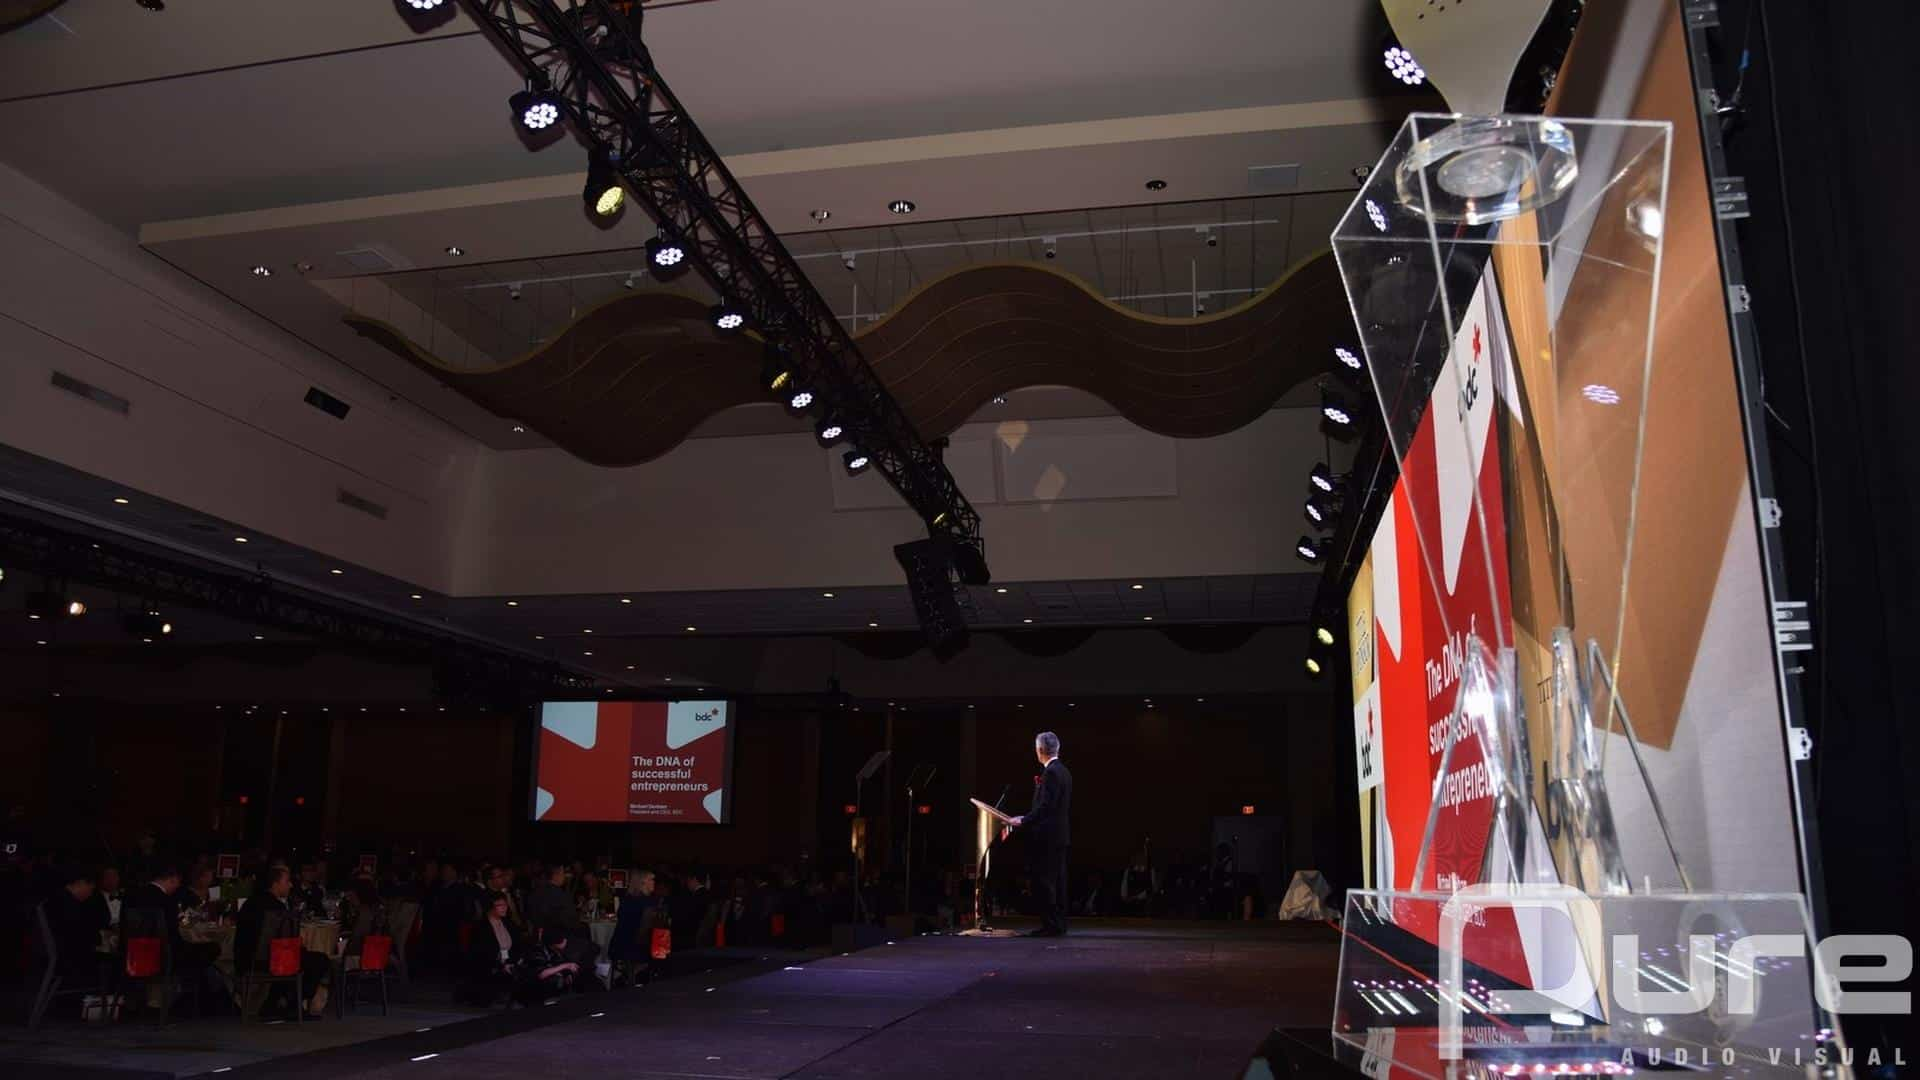 Audio Visual production for an awards gala with LED video wall, projectors, screens, truss, lekos, parcans